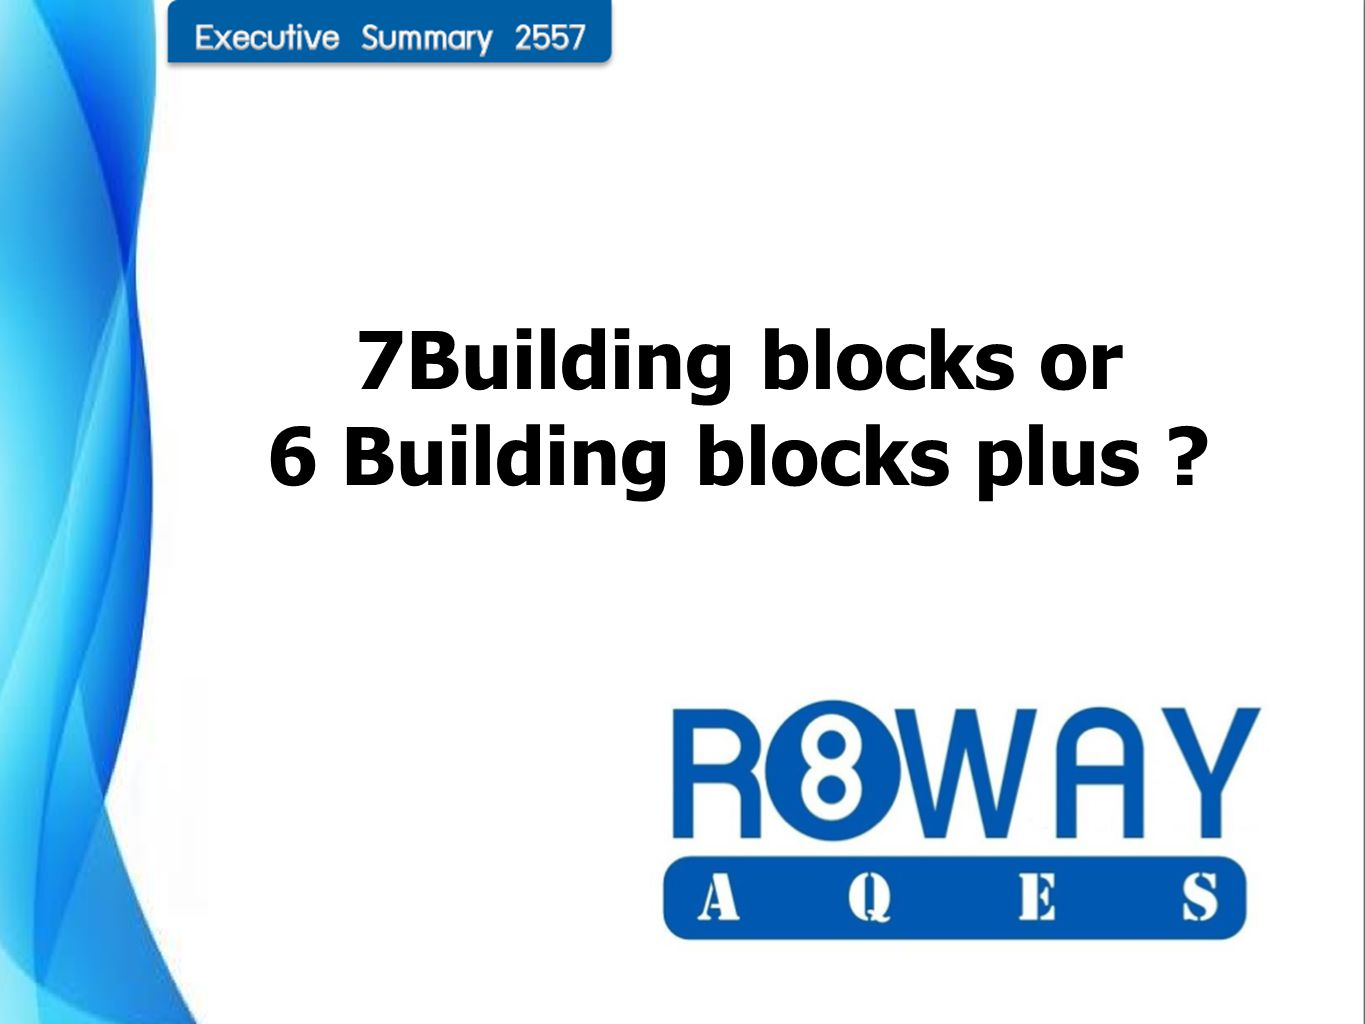 7Building blocks or 6 Building blocks plus